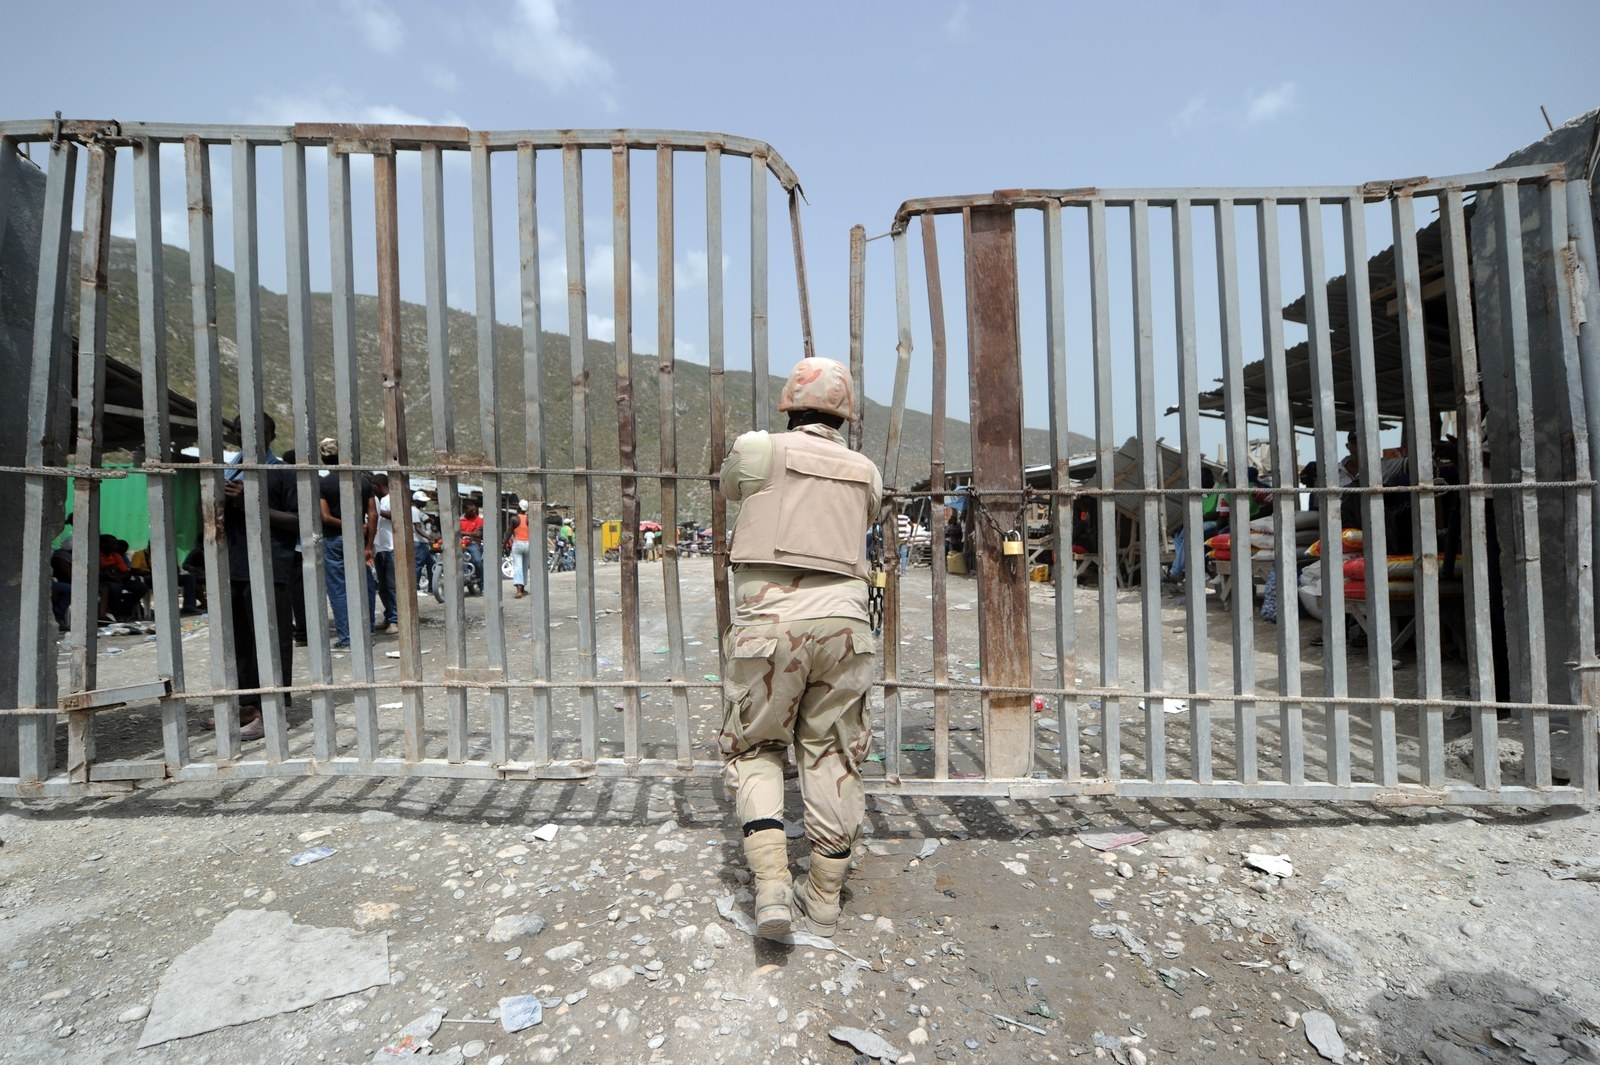 A Dominican soldier closes the gate at the border.